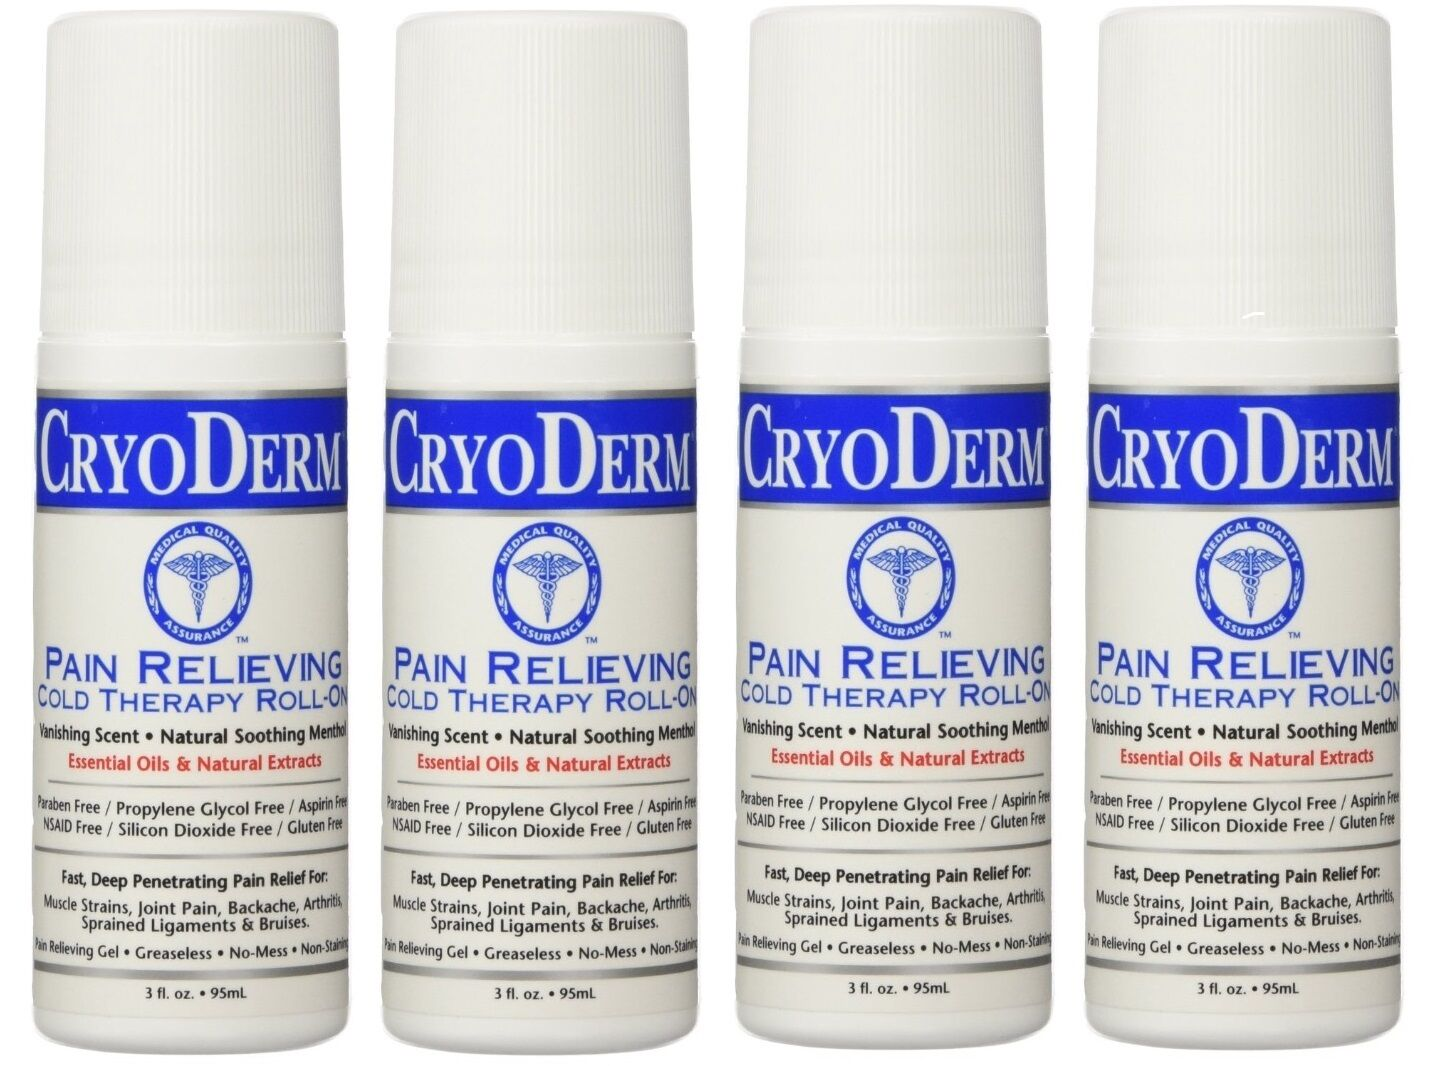 Cryderm 3 Oz. Roll-on 4-pack (brand Exp 11/2019)